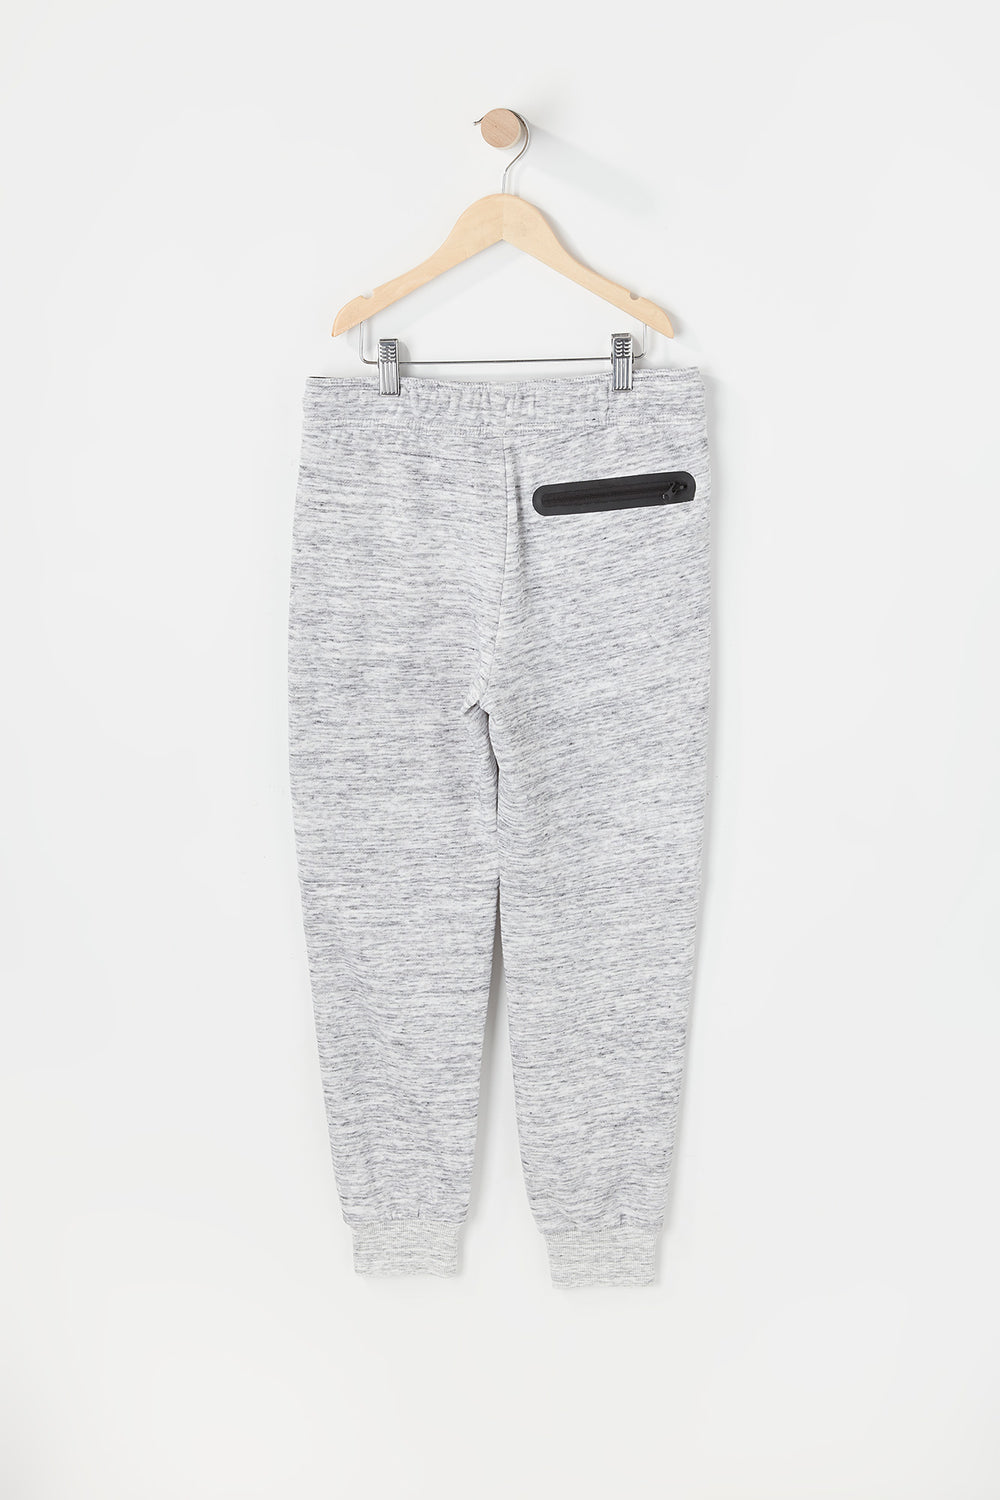 West49 Youth Spacedye Jogger Heather Grey